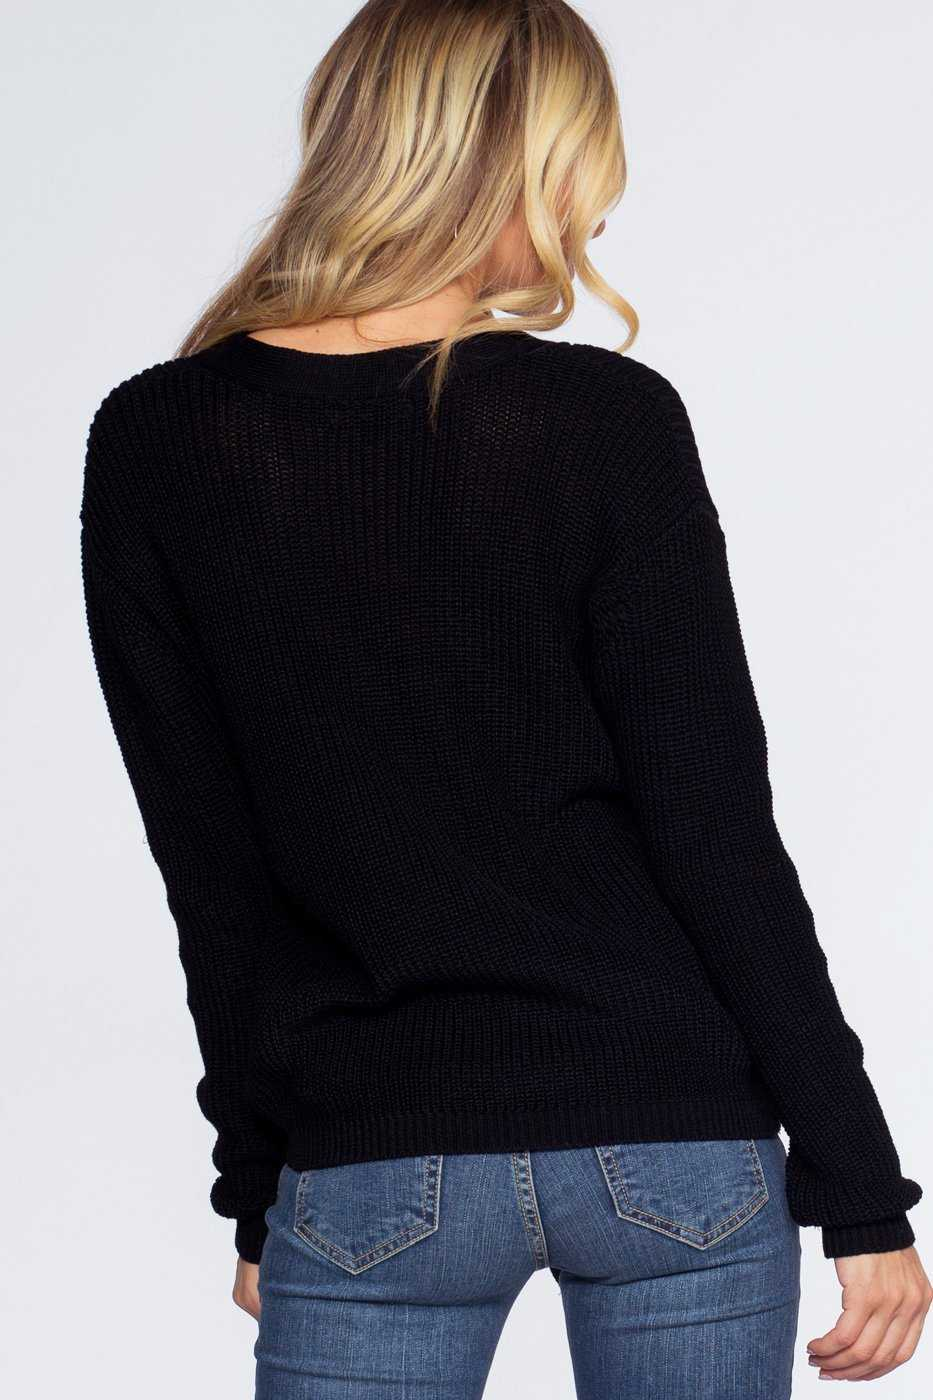 Tops - Lyla Lace Up Sweater - Black